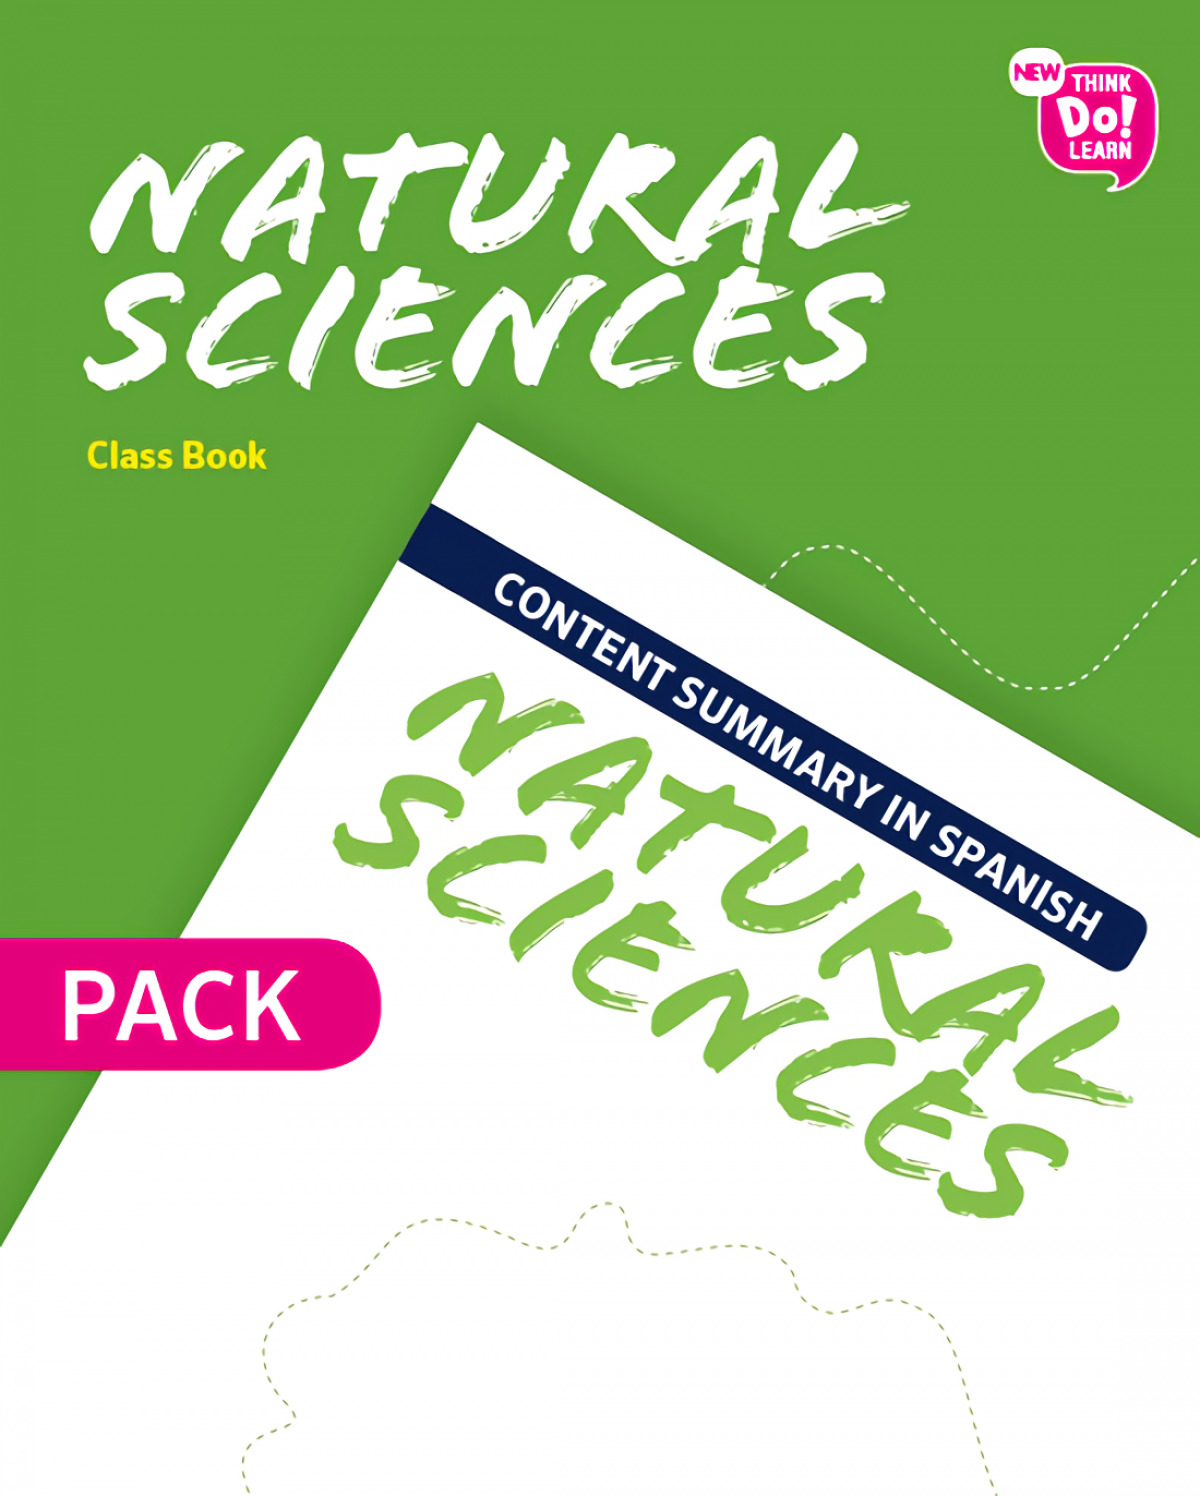 NATURAL SCIENCE 5 PRIMARY COURSEBOOK ANDALUCIA PACK NEW THINK DO LEARN